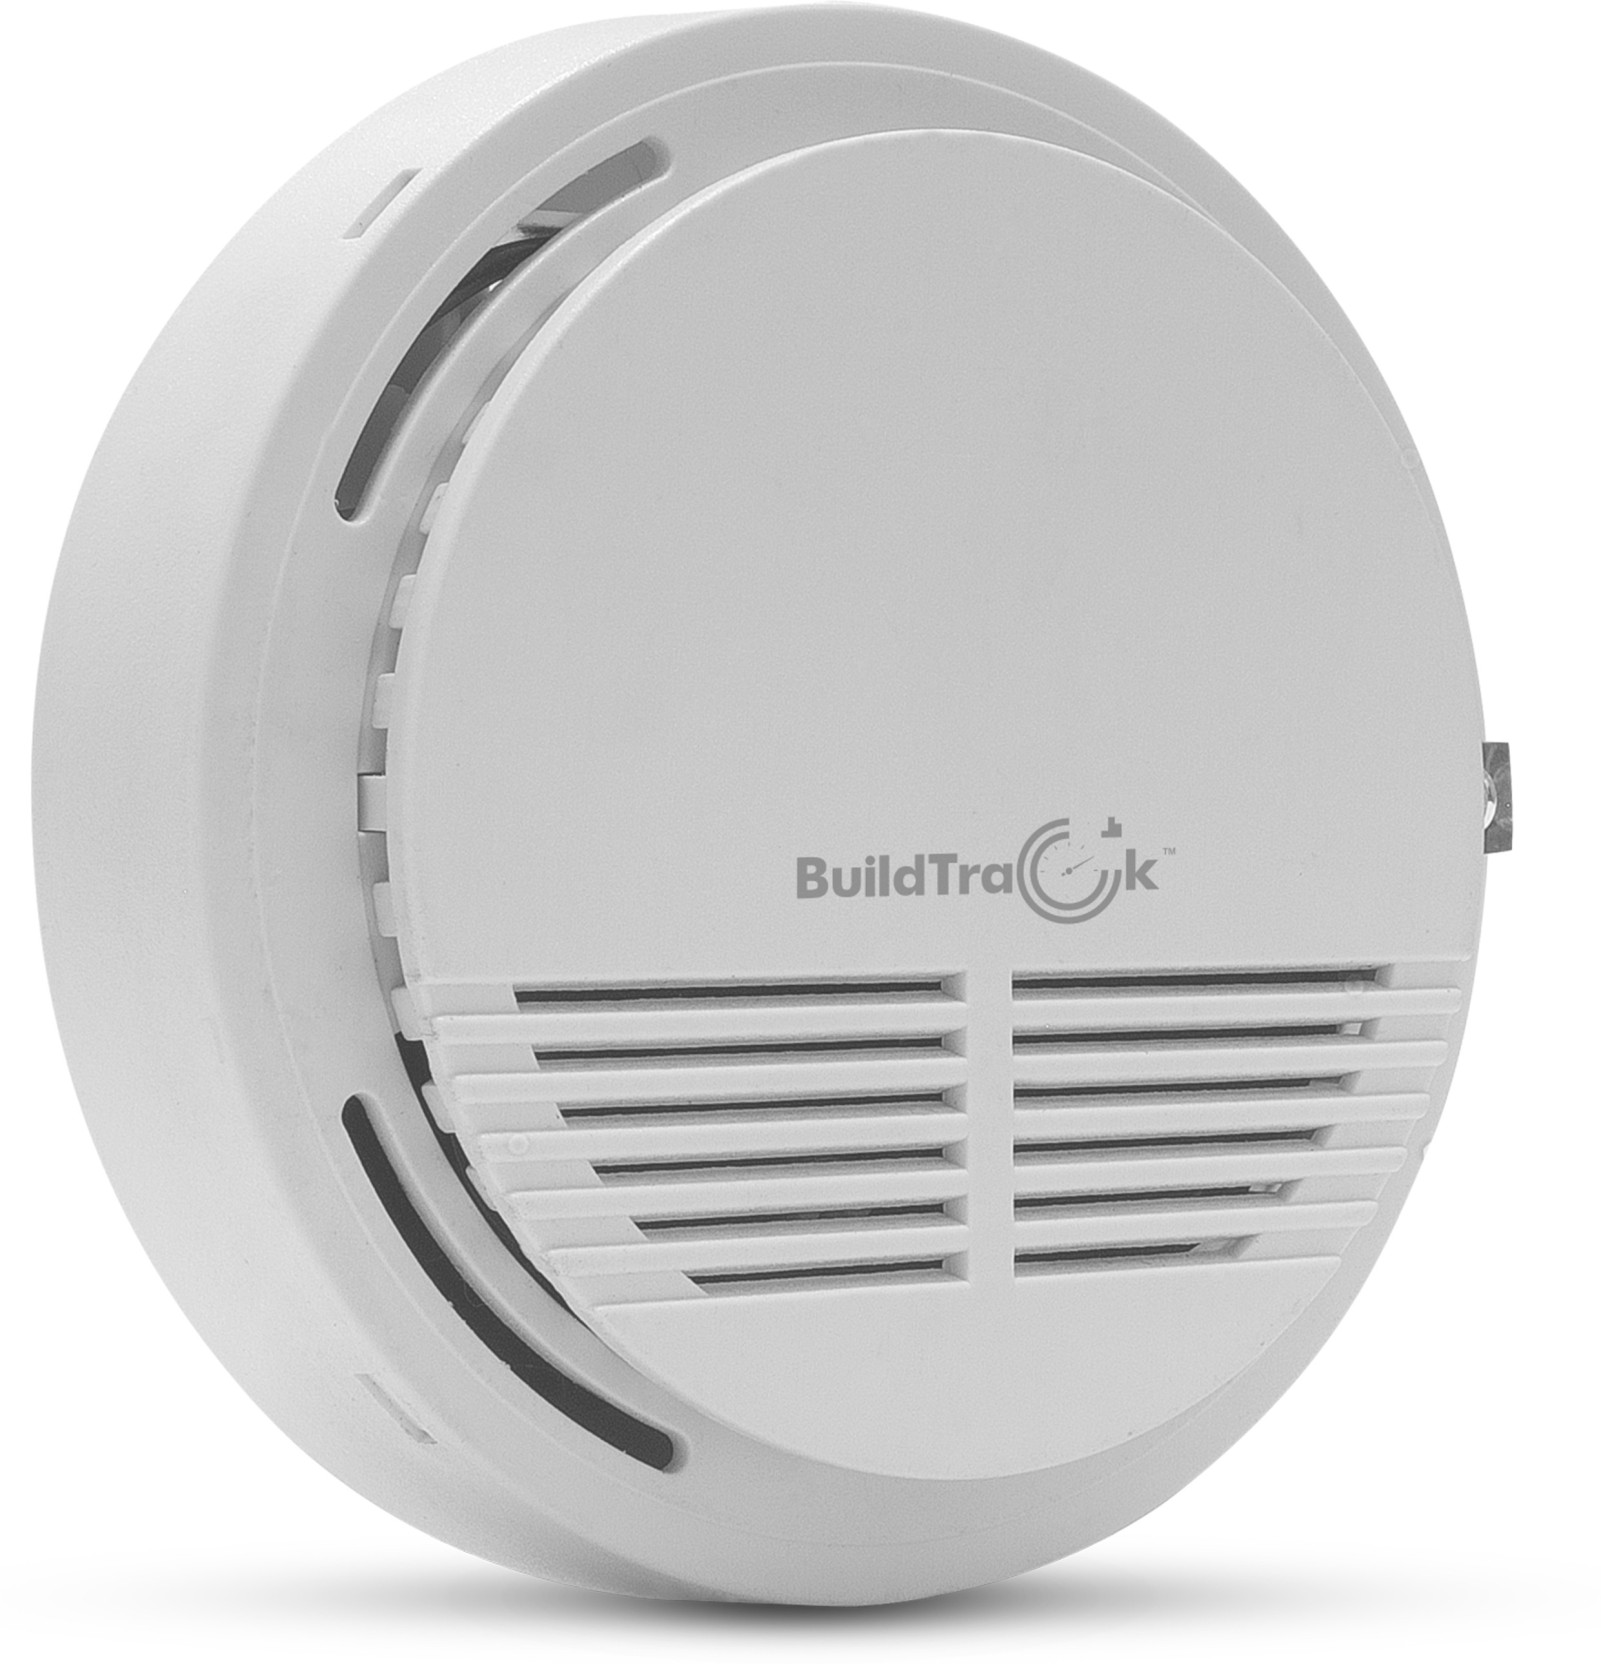 buildtrack smoke detector wireless fire sensor alert alarm security system wireless sensor. Black Bedroom Furniture Sets. Home Design Ideas